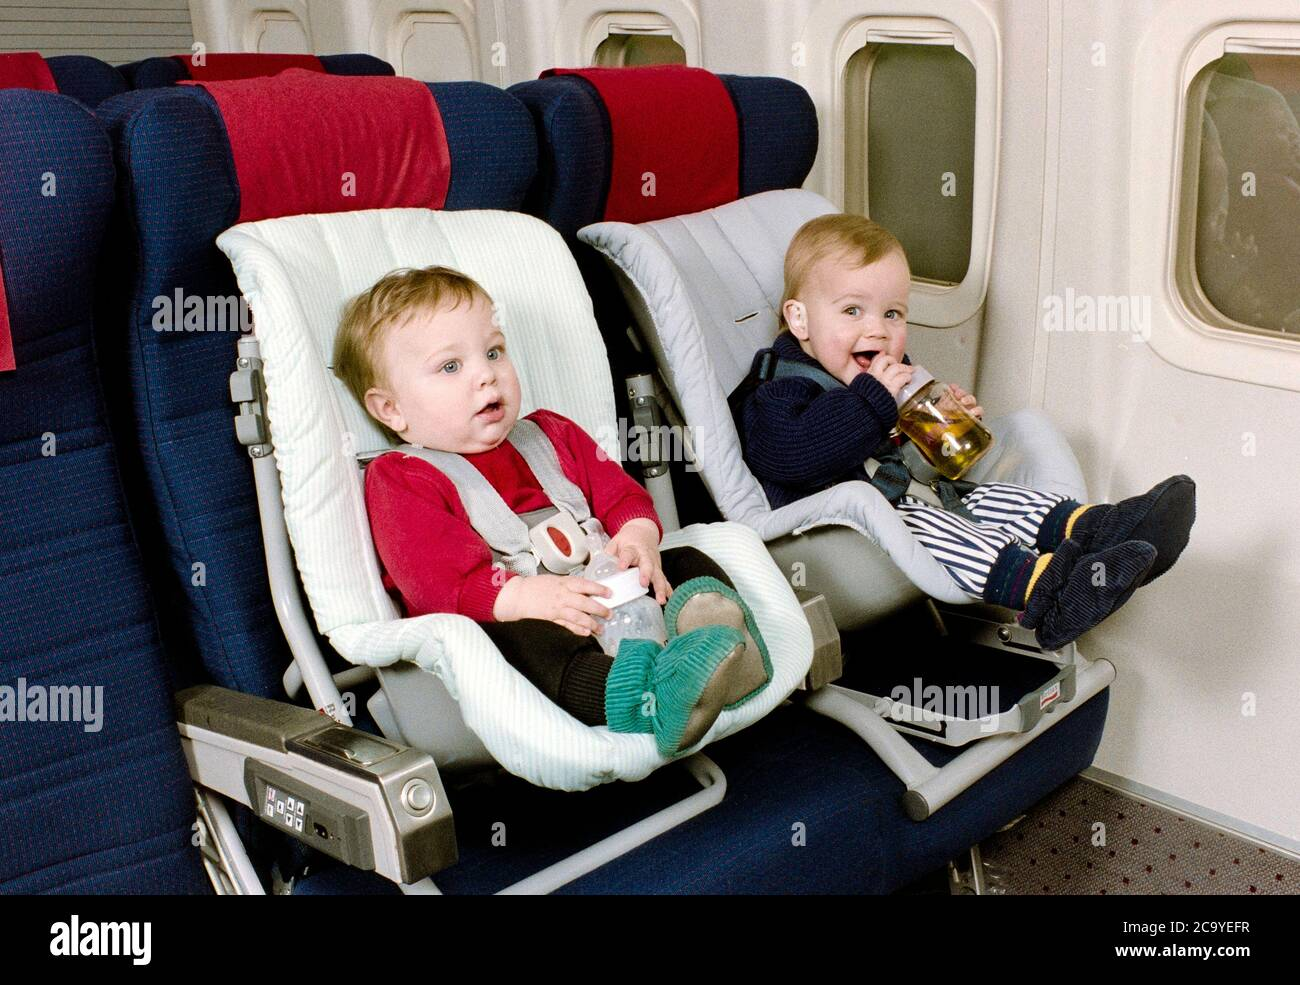 British Airways Introduce Child Safety Seats For Very Young Passengers Travelling On Their Aircraft In 1991 The Child Seats Are Based On The Model Designed For Motor Vehicles Stock Photo Alamy